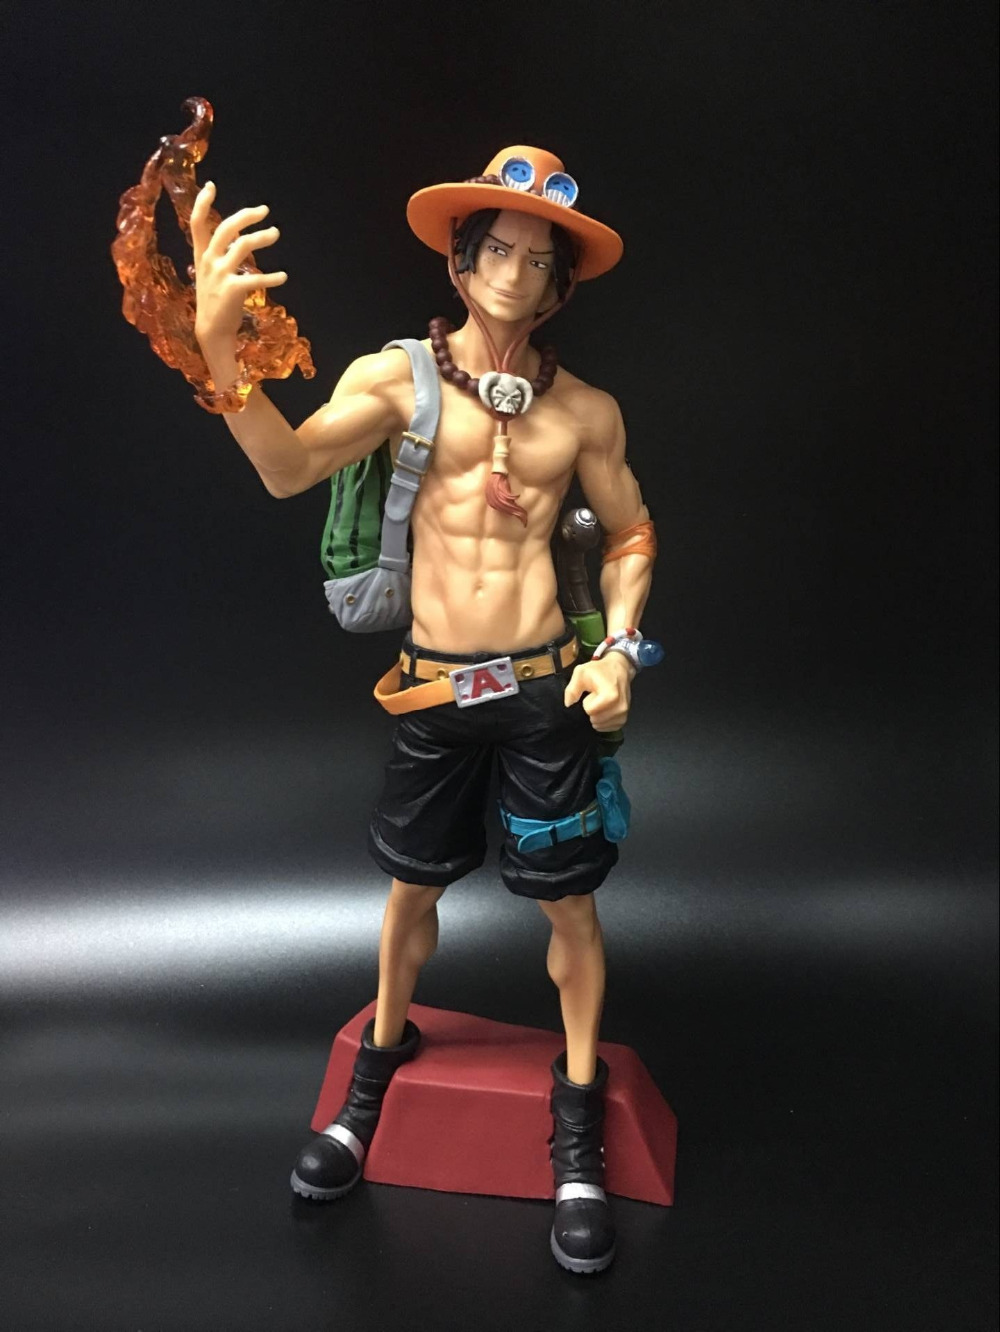 Anime Action Figure One Piece Super Master Stars Piece MSP Fire Punch The Portgas D Ace